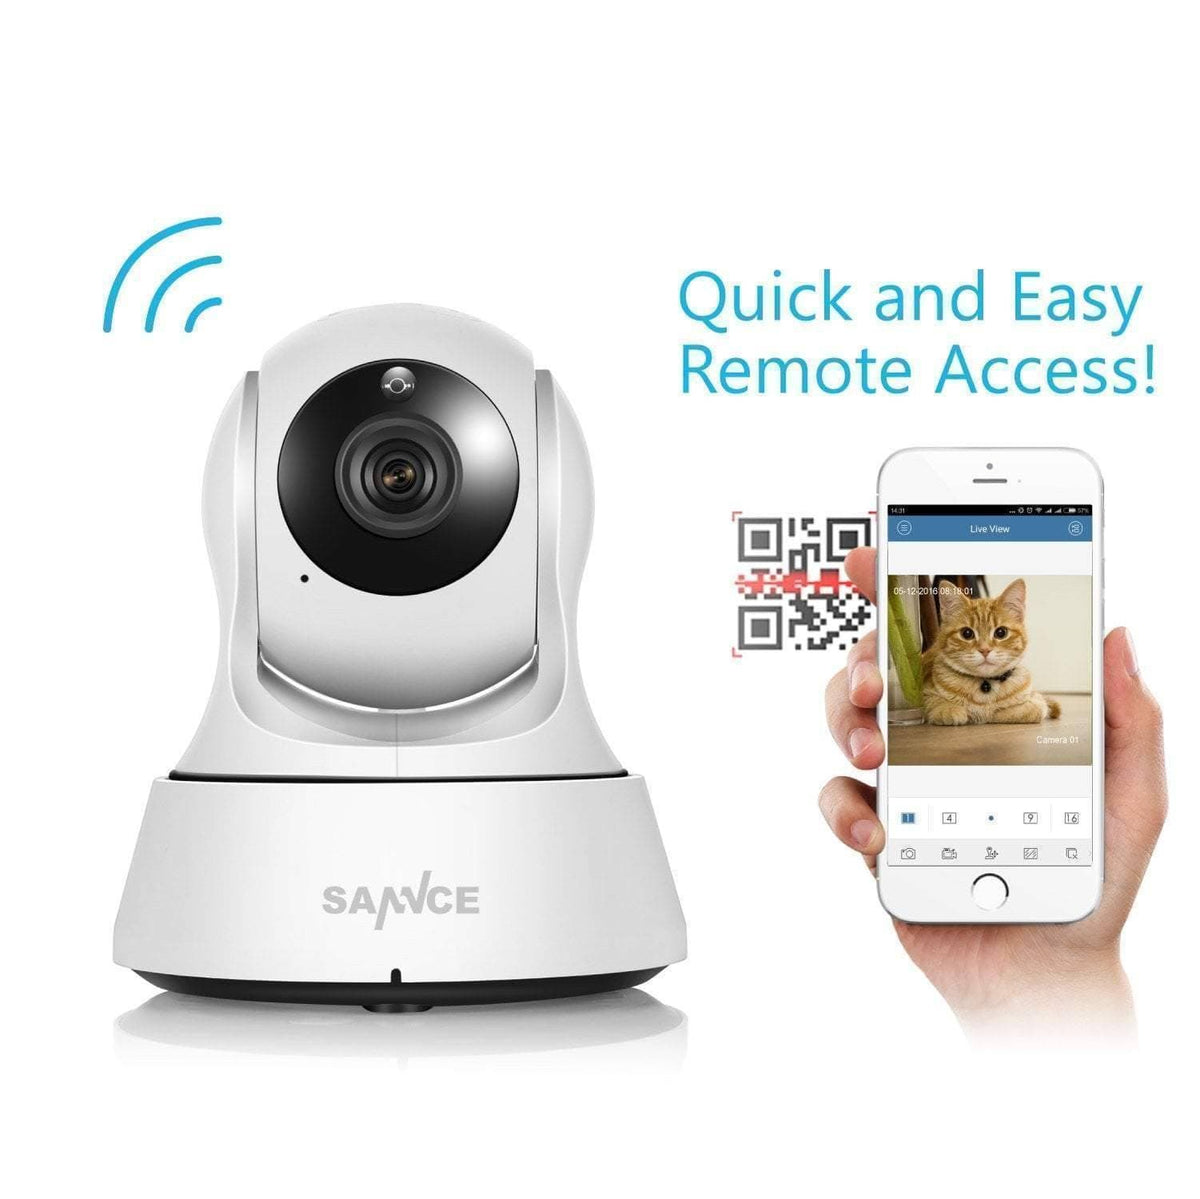 1080P HD Wireless Wi-Fi Smart Security CCTV Camera  -  With 1m Power Cable / US Plug  -  A+ Gadgets -  Gadget